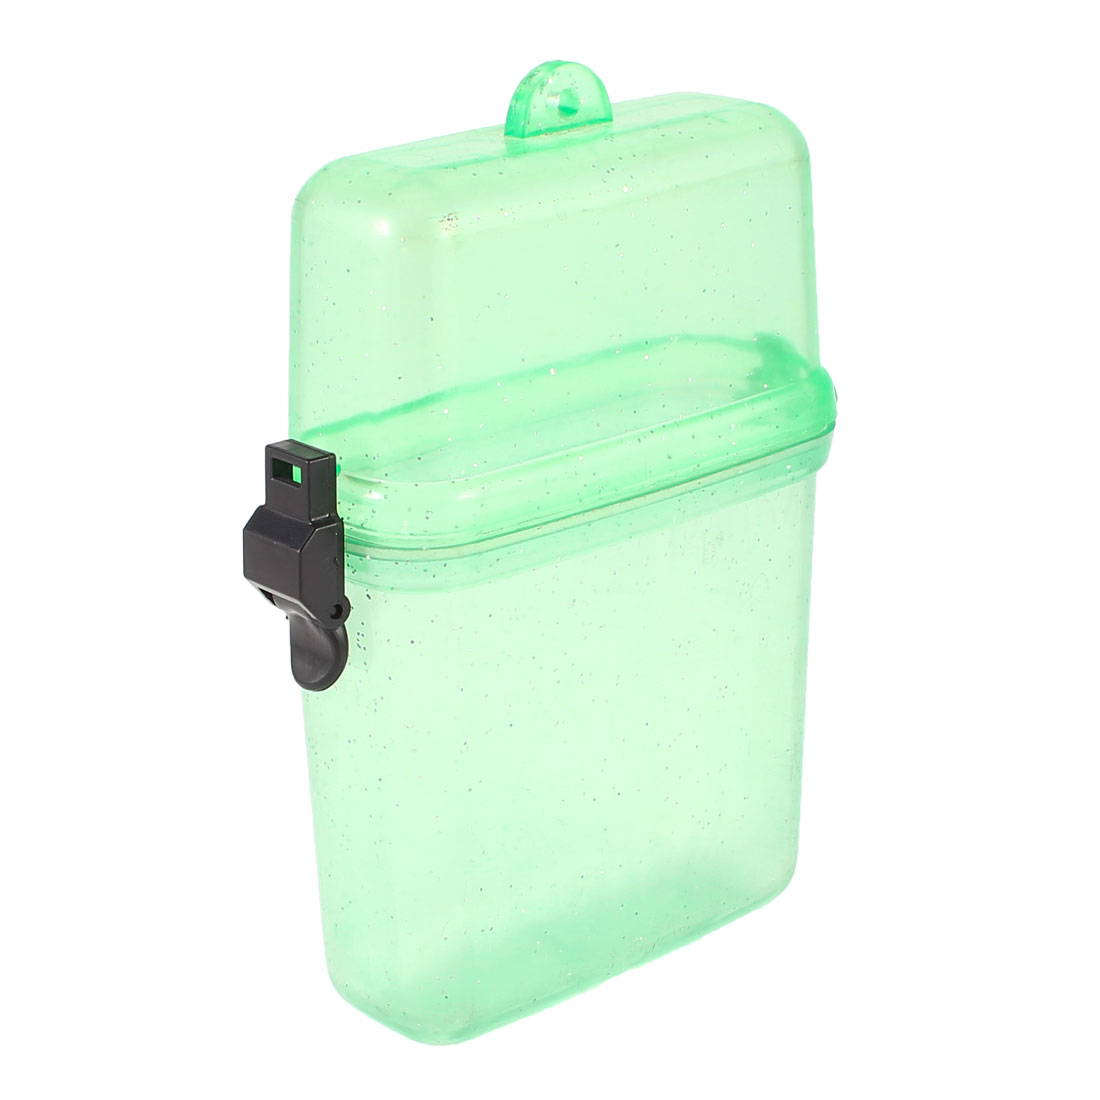 Plastic Waterproof Case Box Container Clear Green for Mobile Phone Watches